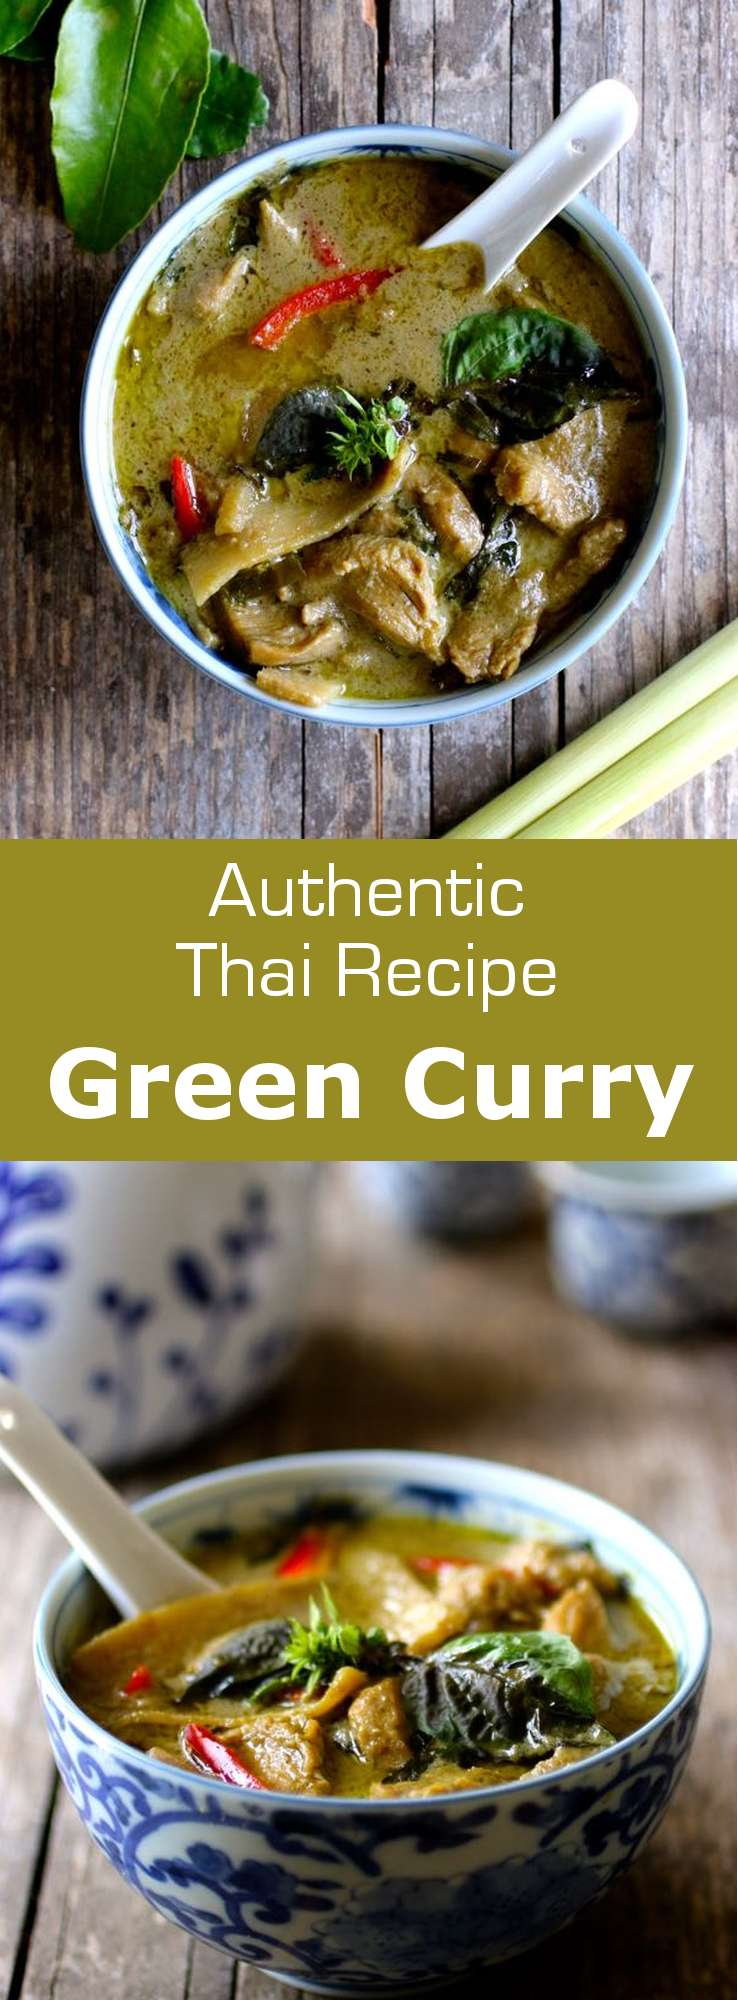 Green curry (kaeng khiao wan) is a pungent and very aromatic Thai curry perfectly combining spicy, salty, sweet and umami flavors. #Thai #Thailand #ThaiCuisine #AsianCuisine #SoutheastAsia #Curry #WorldCuisine #196flavors